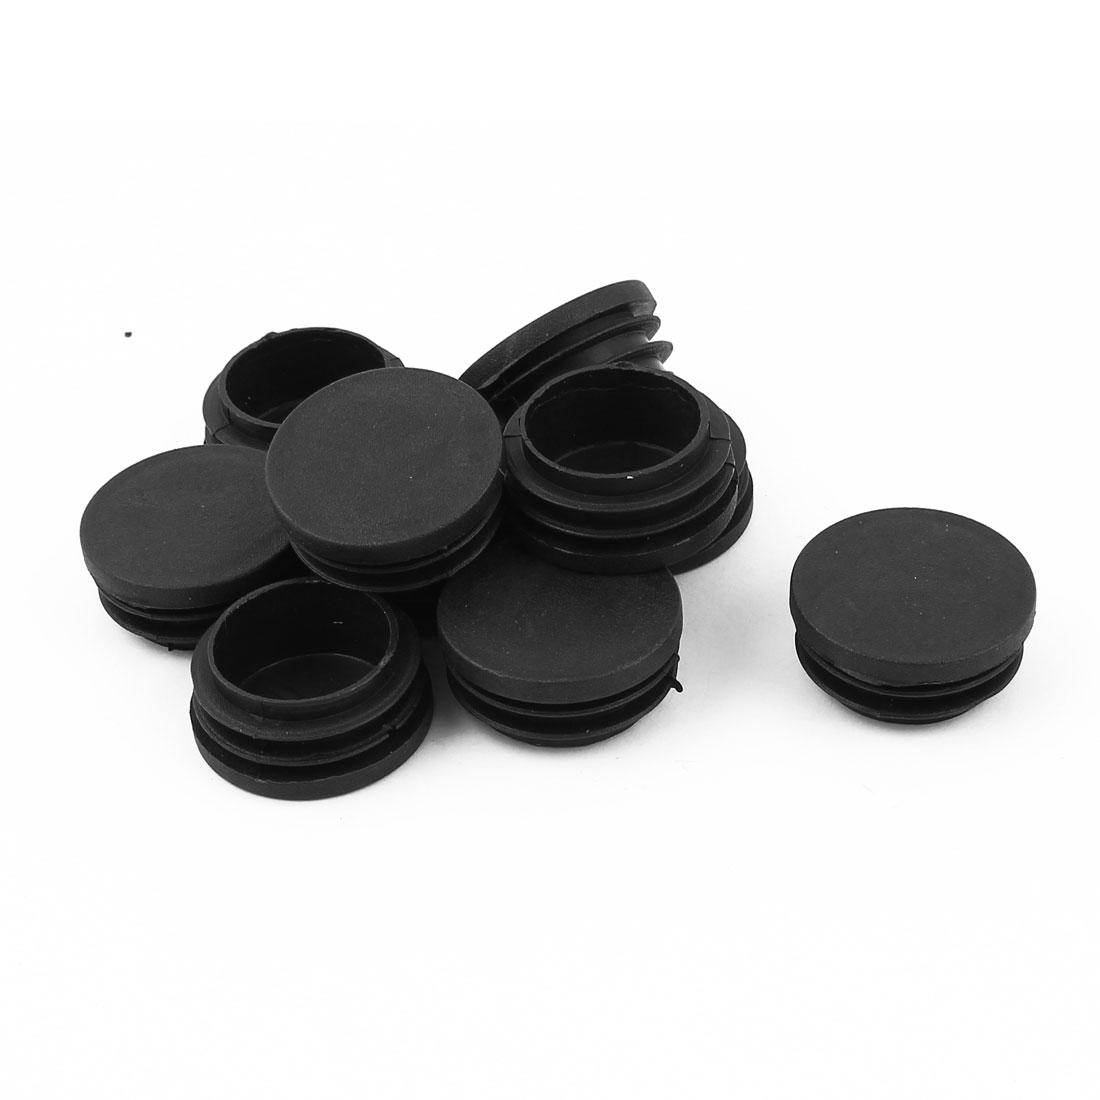 10 Pcs Plastic Blanking End Caps 38mm Round Tube Insert Bung Black